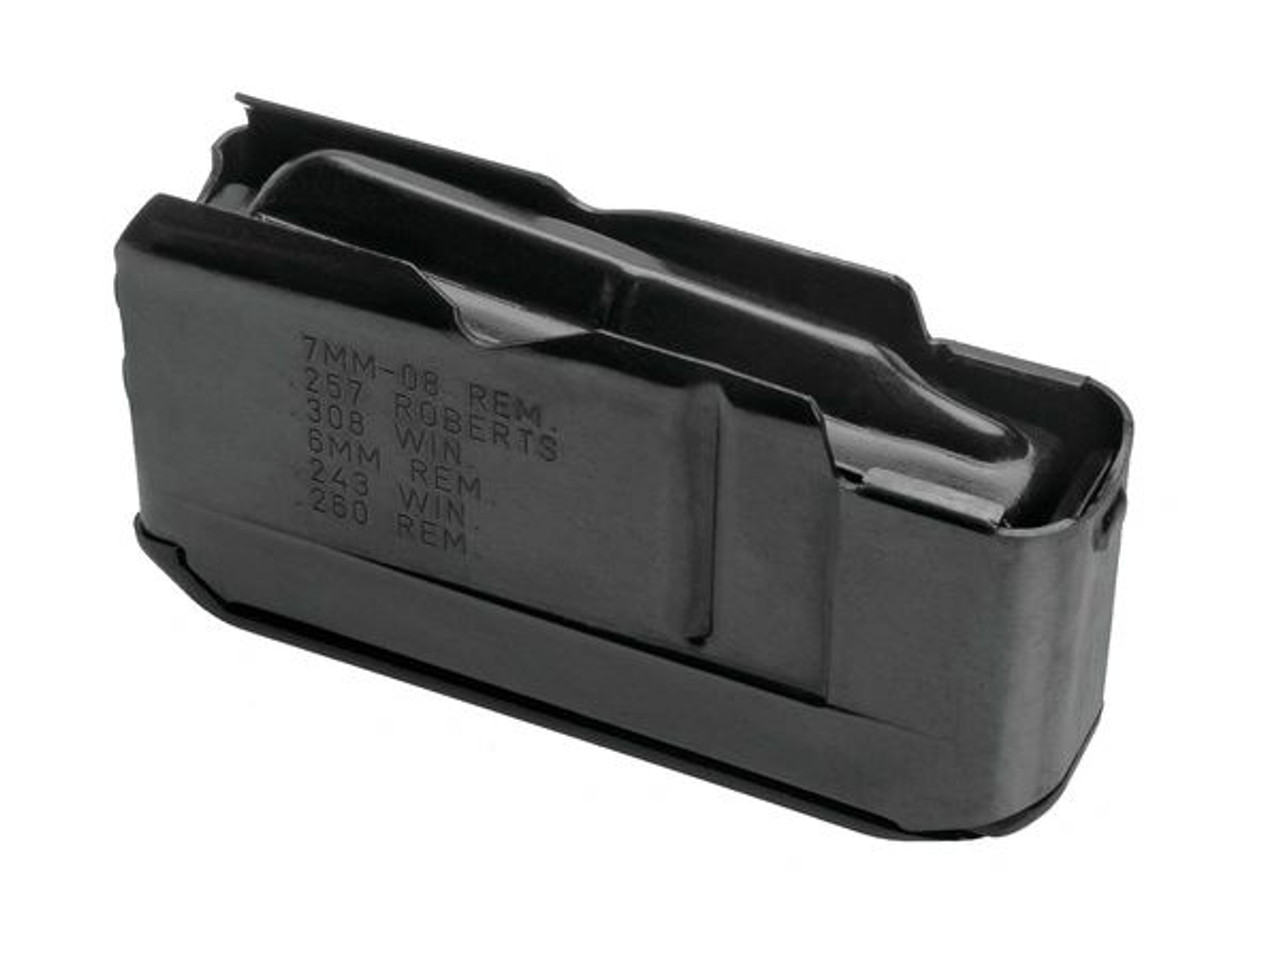 Remington Model 7600 Magazine, short action #19636